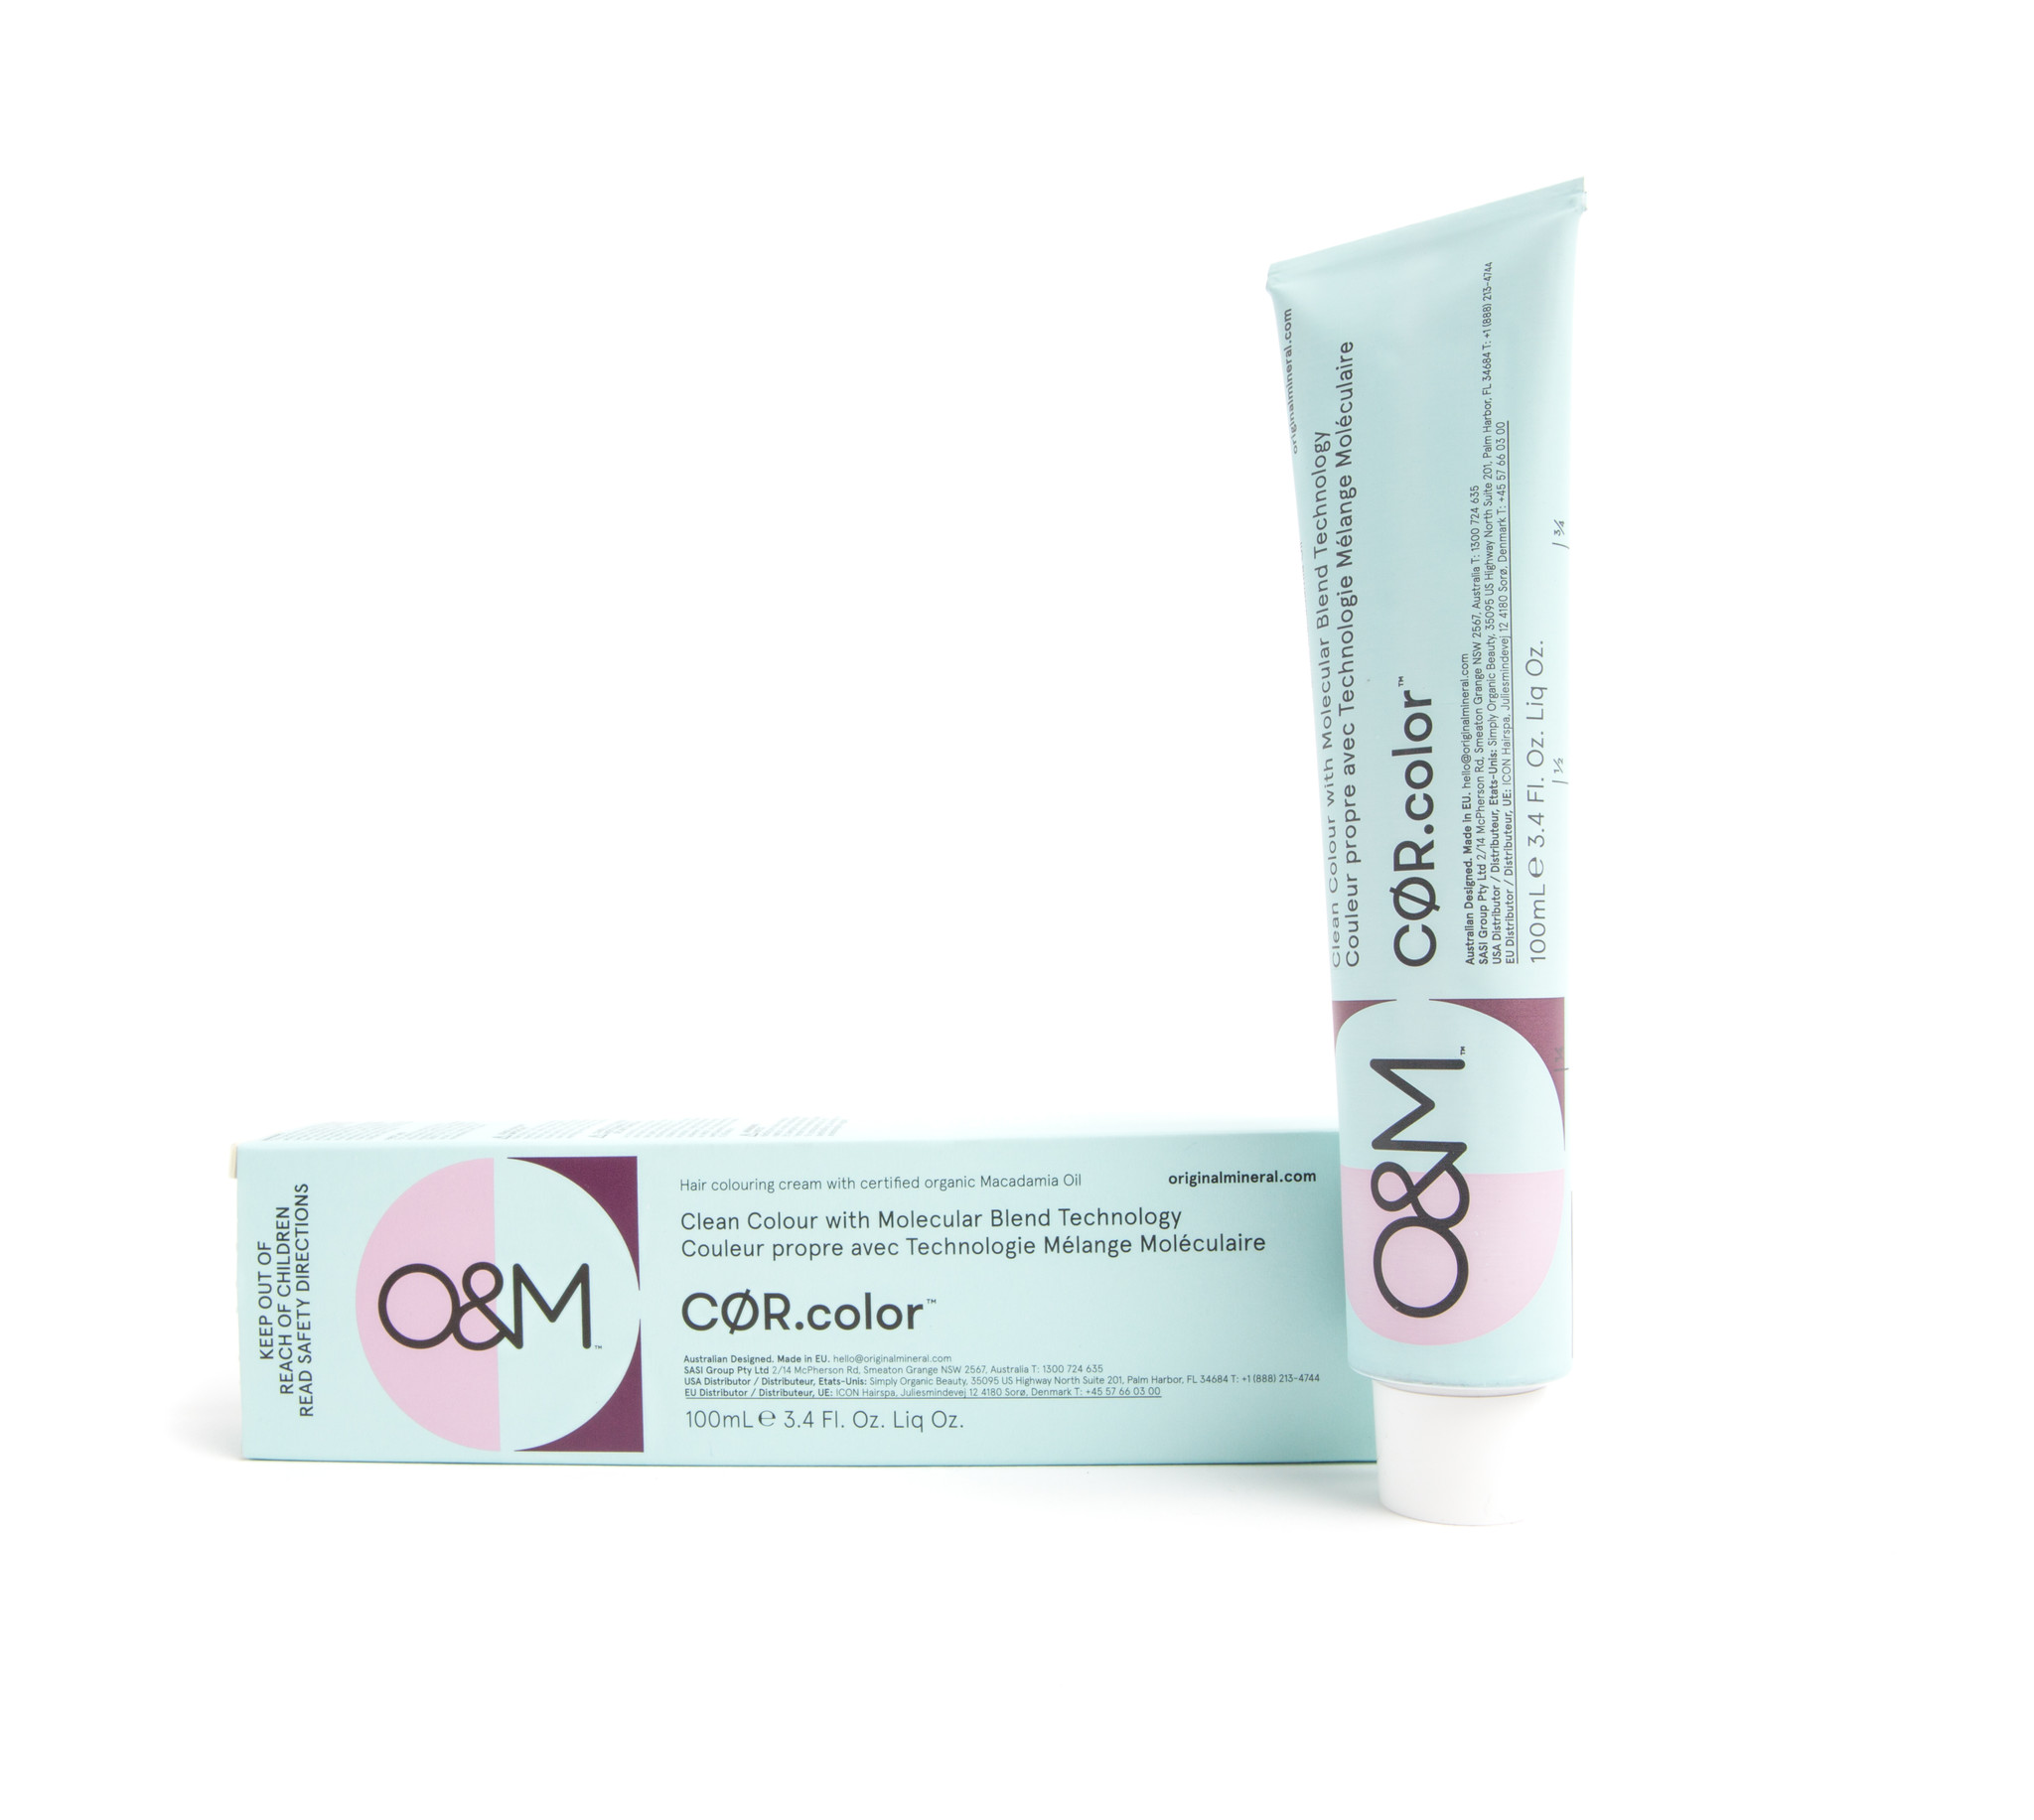 O&M - Original Mineral O&M CØR.color Light Pearl Ash Blonde 8.81 100g